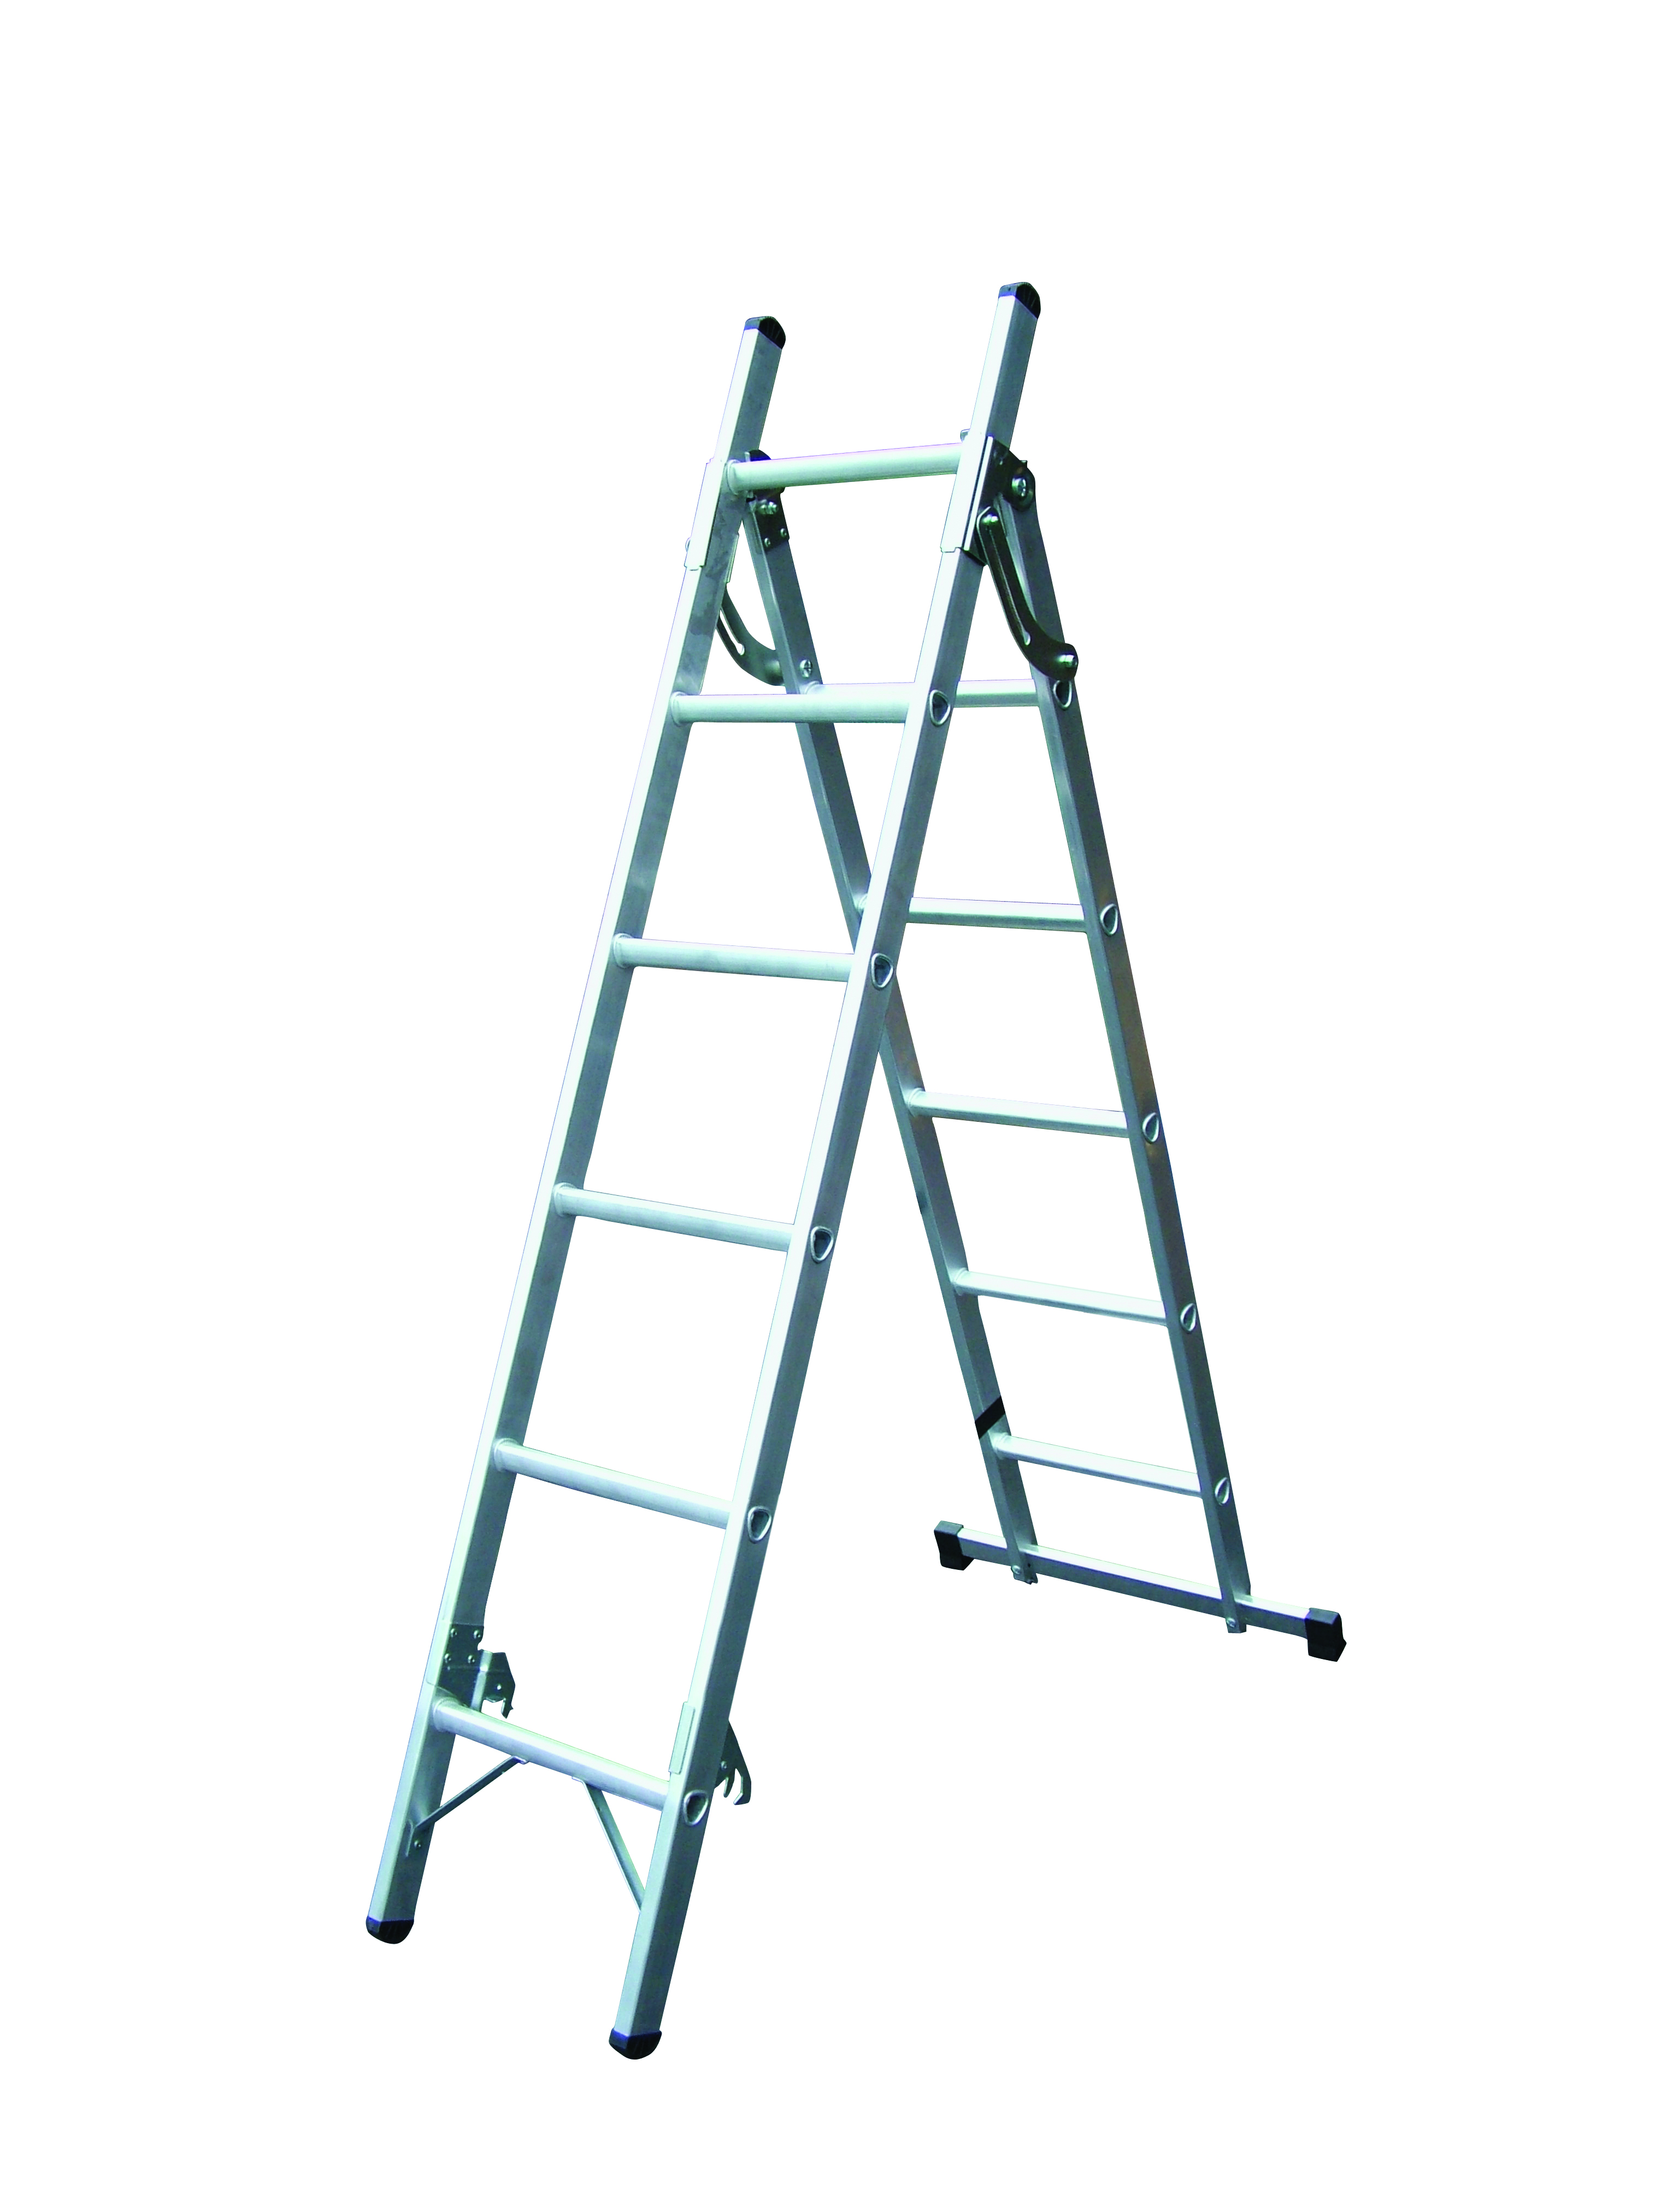 3 Way Combination Ladder Uk Manufactured Warehouse And